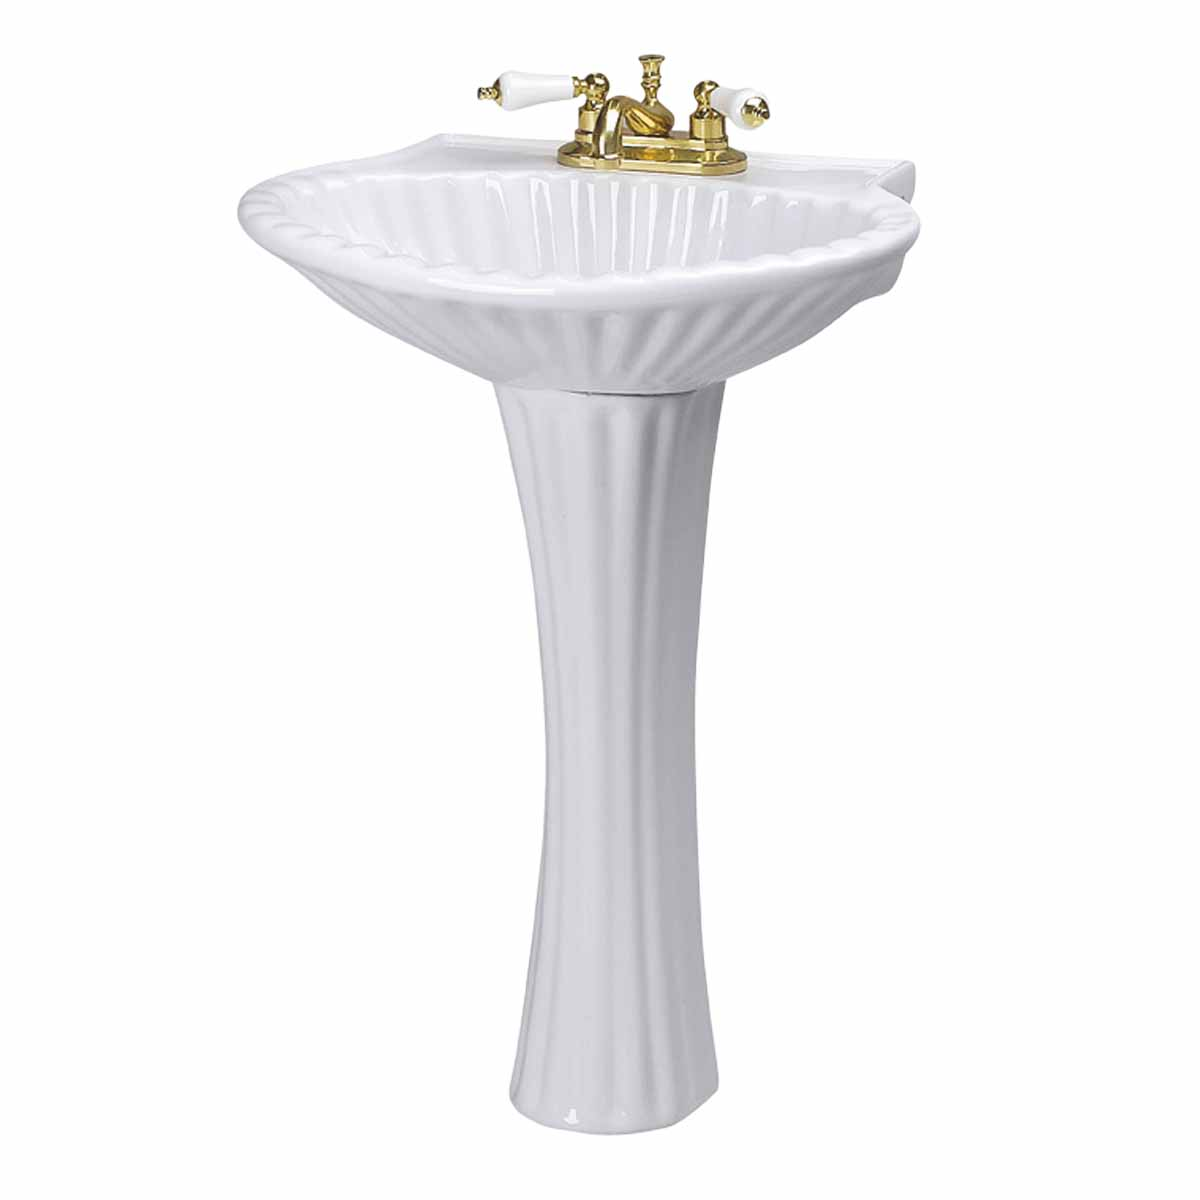 Seashell Pedestal Sink : Bathroom Pedestal Sink White China Sea Shell